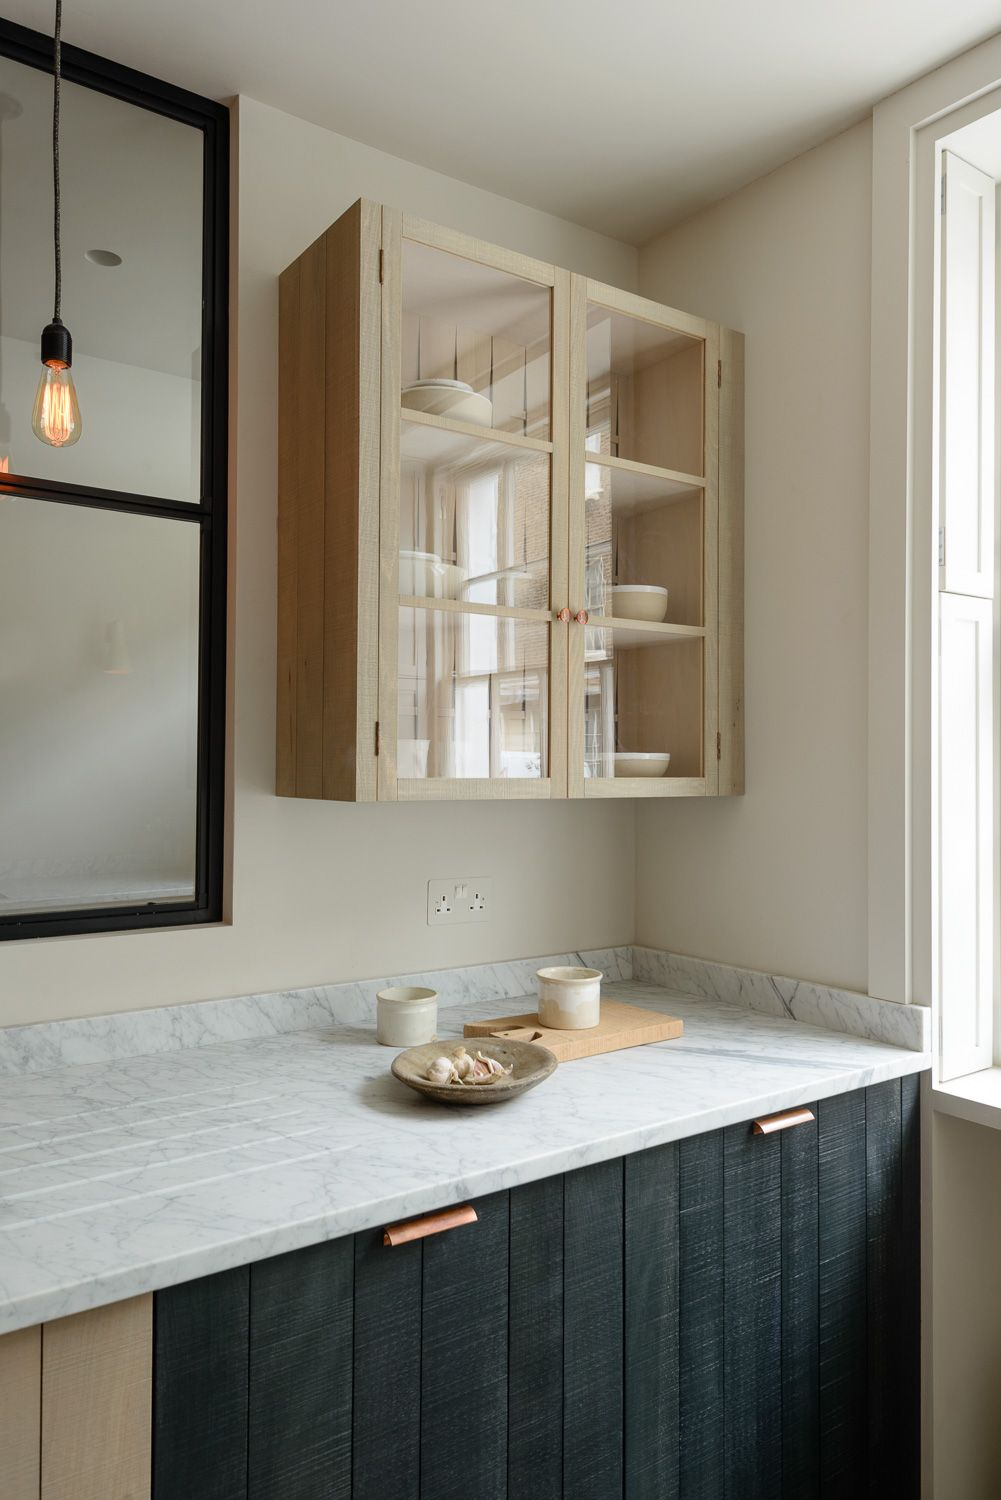 Mixing Kitchen Cabinet Colors Rough Sawn Beech Panel Doors Mixed With Smooth Honed Carrara